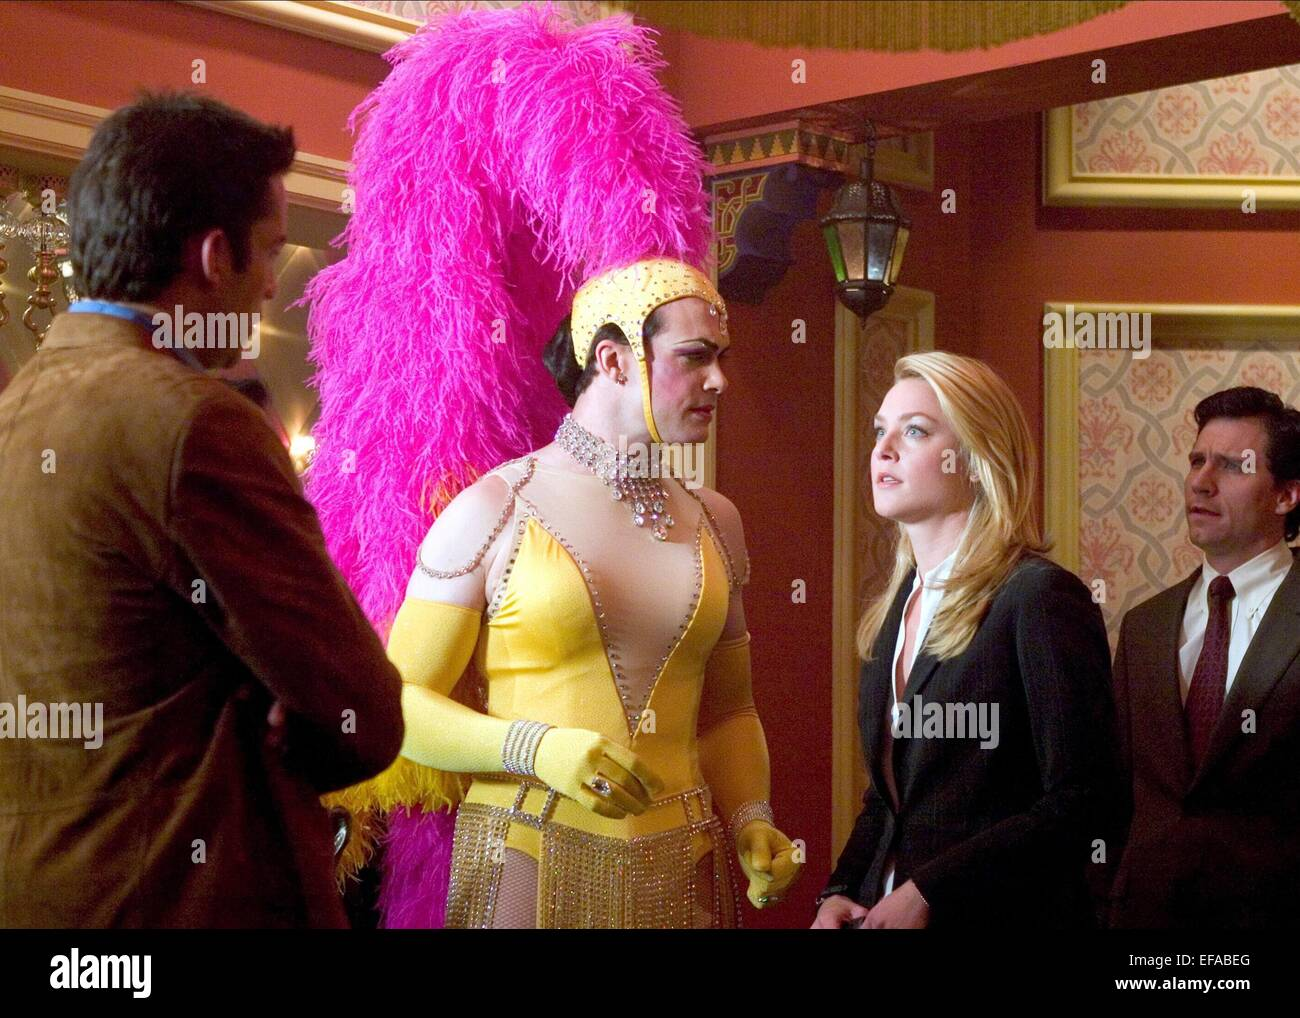 DIEDRICH BADER ELISABETH ROHM MISS CONGENIALITY 2 ARMED AND FABULOUS 2005